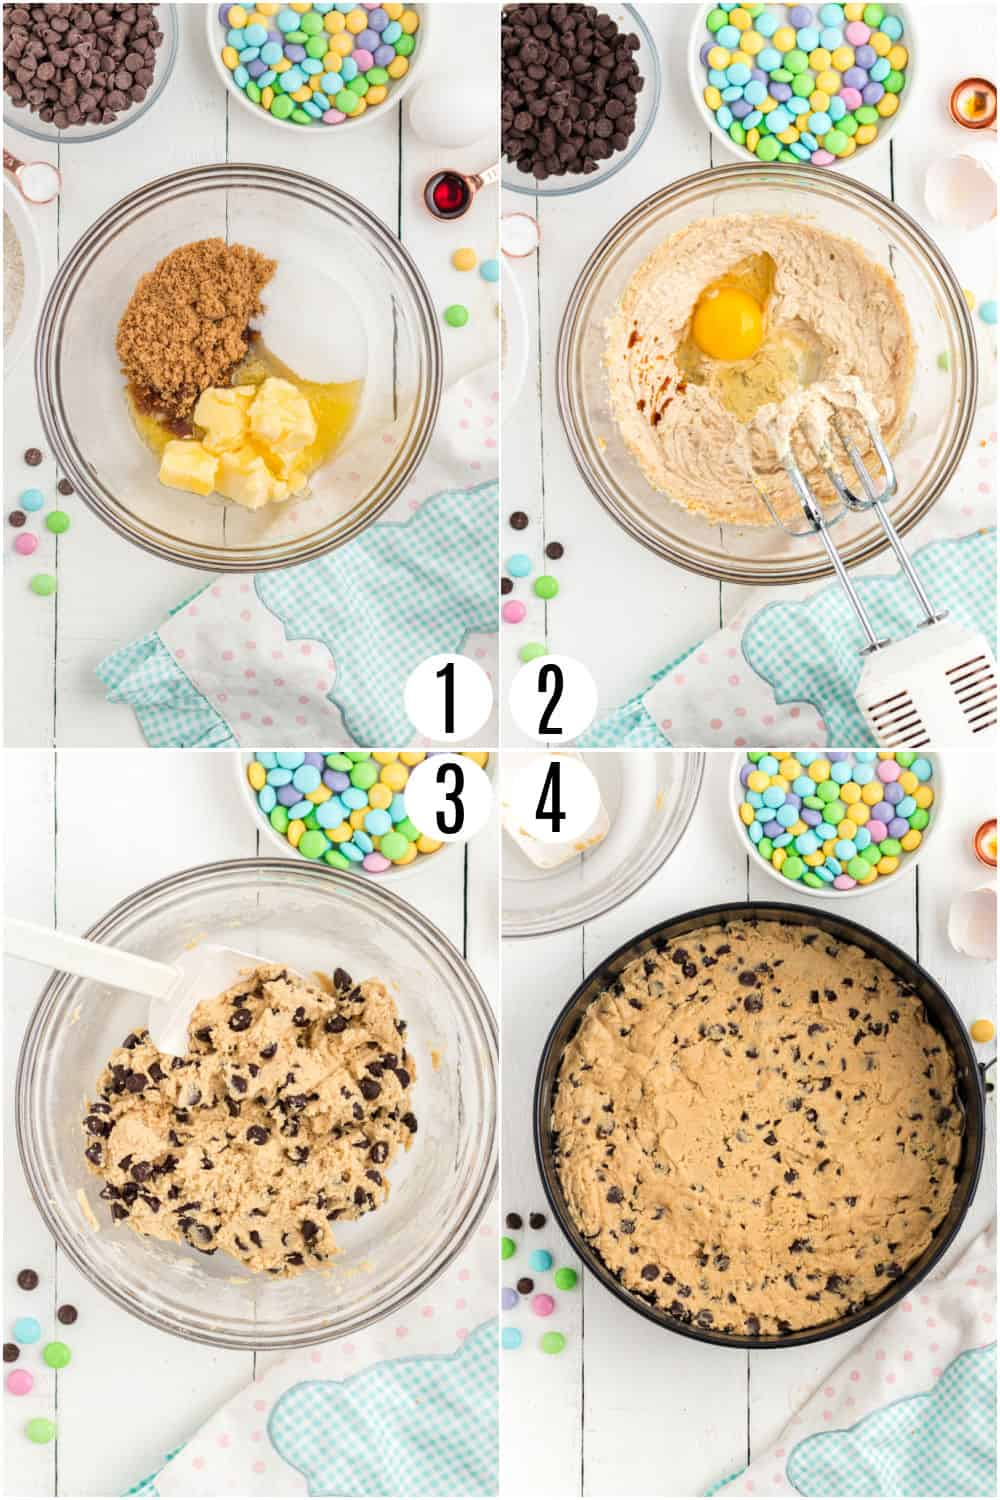 Step by step photos showing how to make an easter chocolate chip cookie cake.